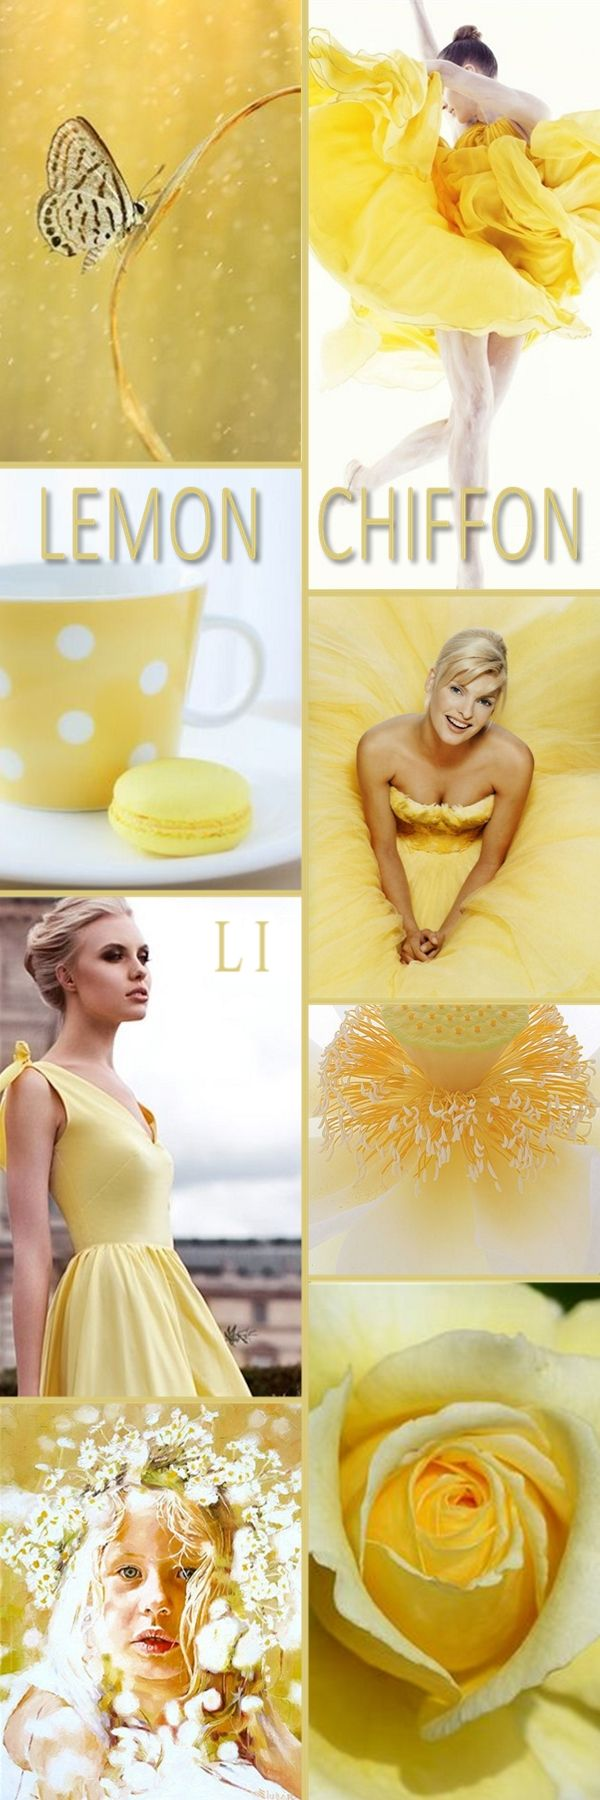 "Hello Ladies. Our next color will be "" LEMON CHIFFON "" Happy Pinning and Thanks so much ❤"